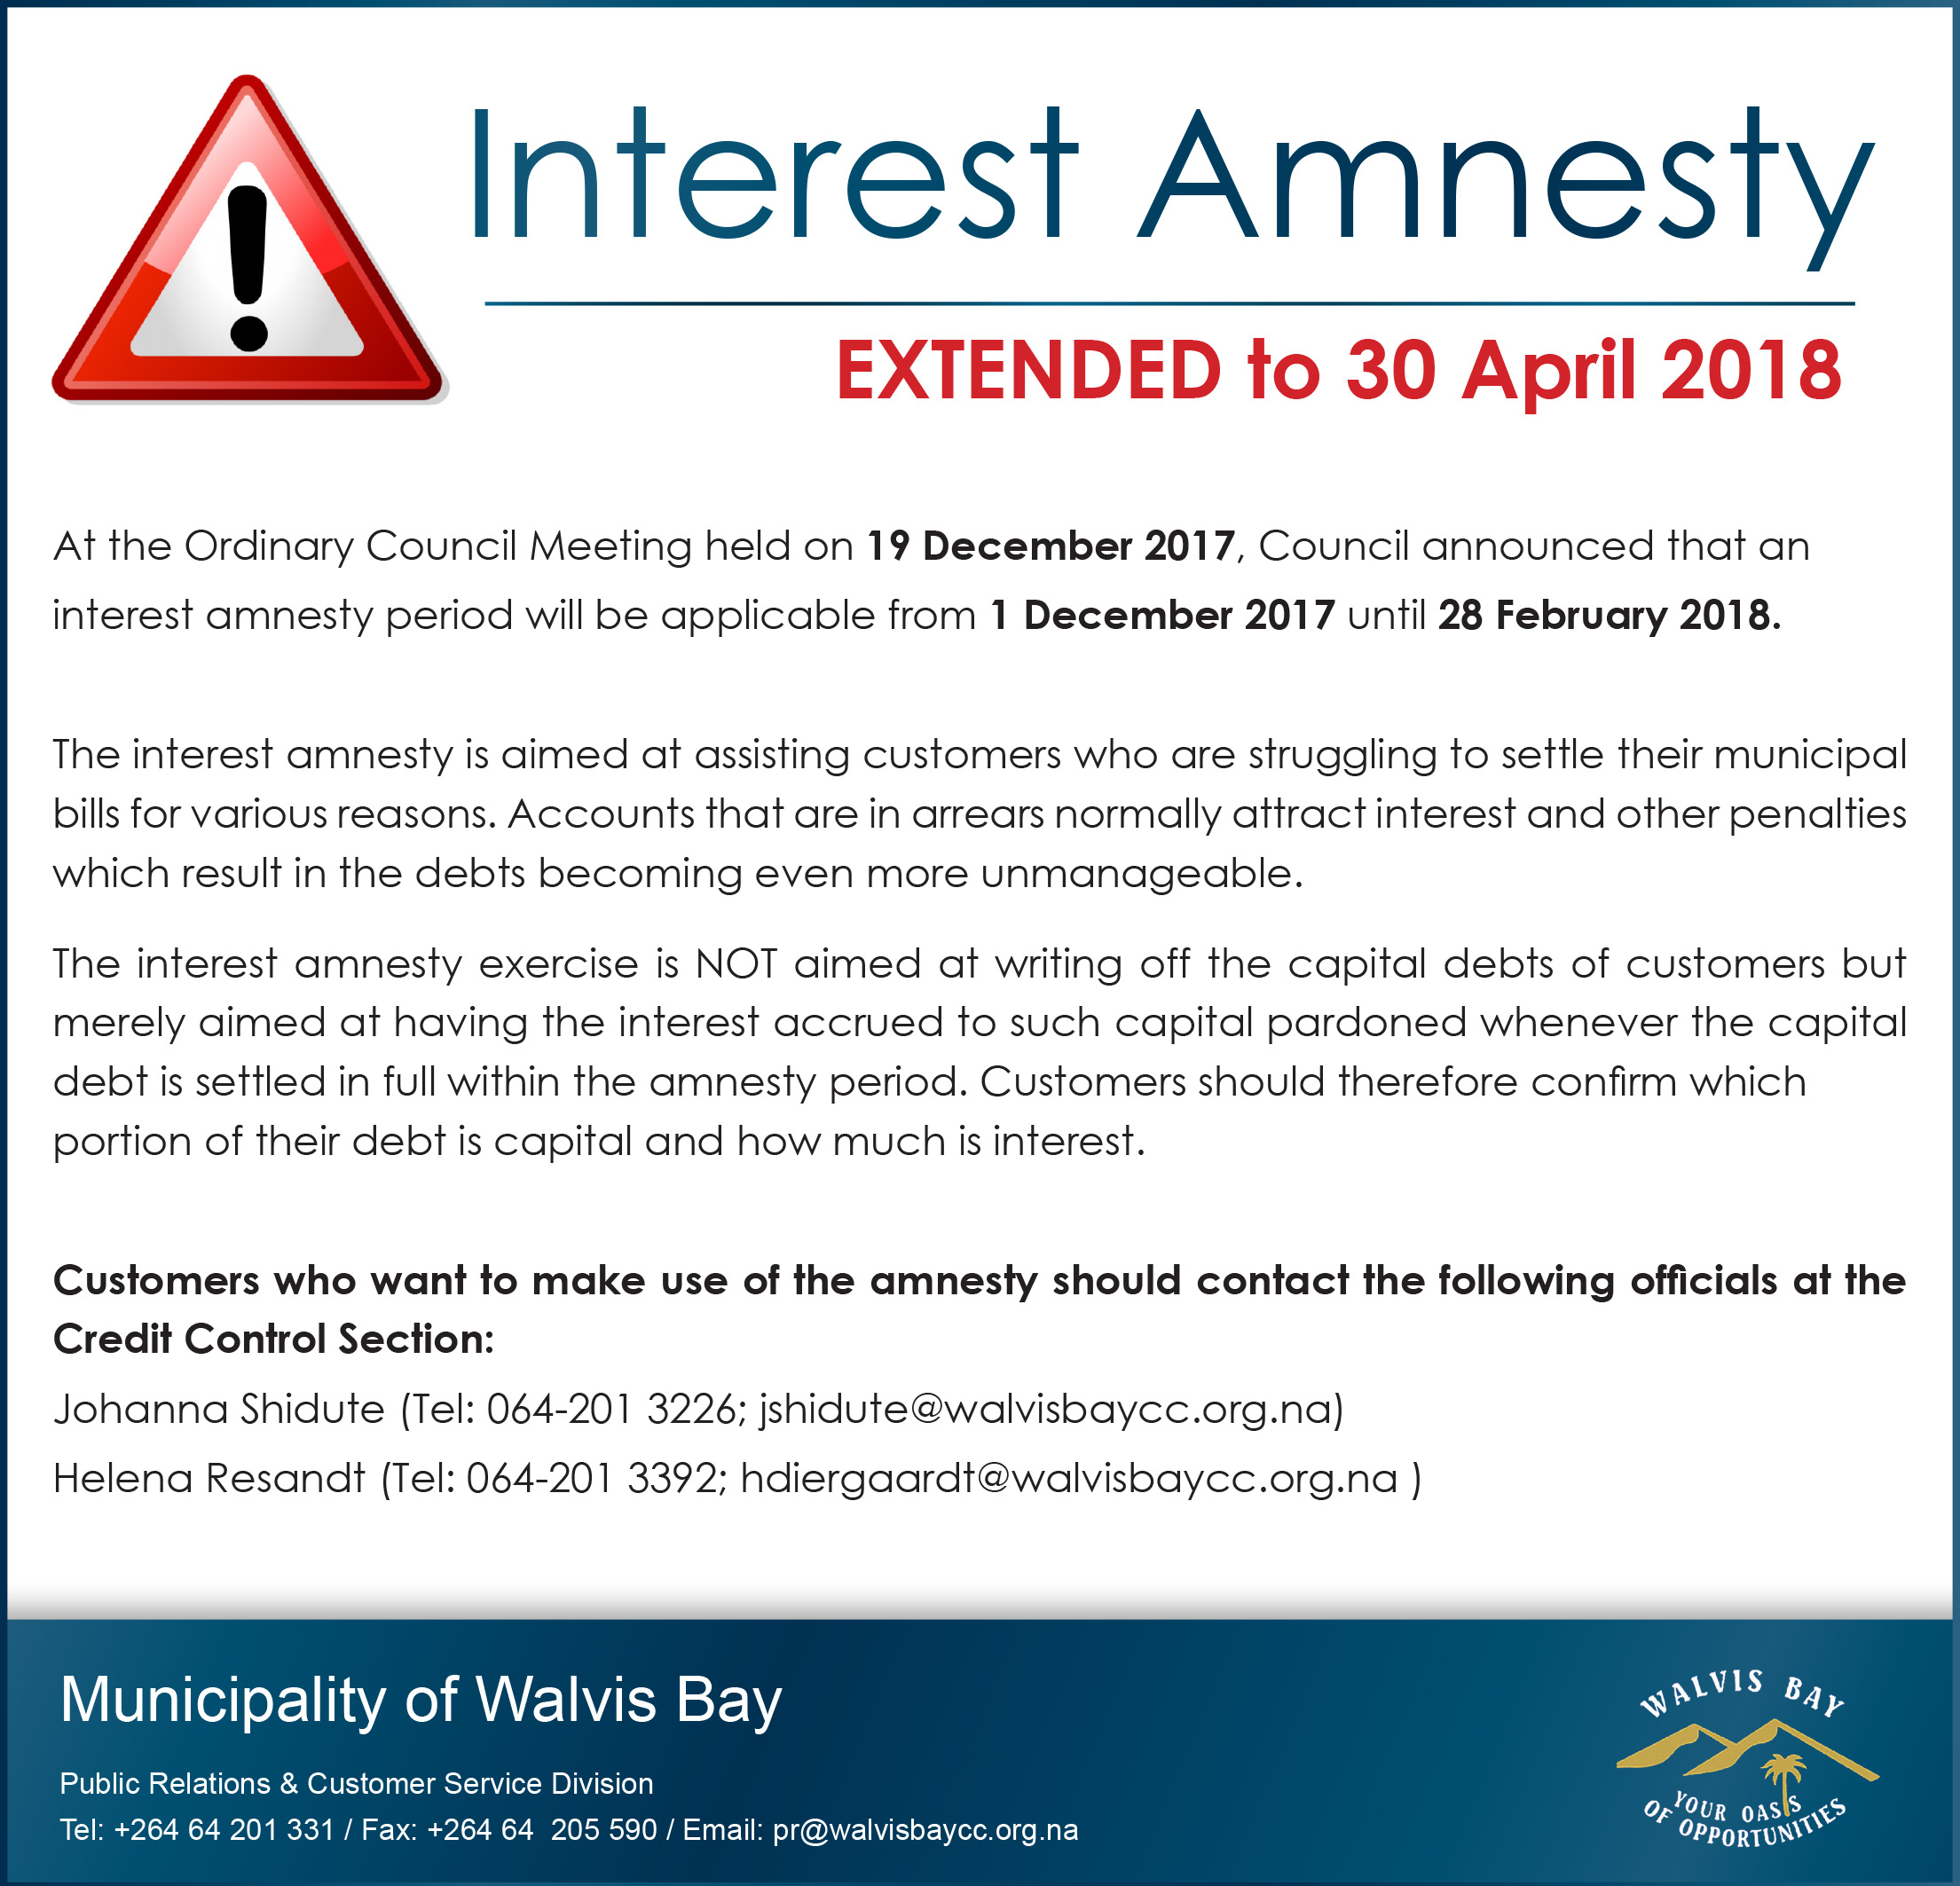 18x5 Extended Interest Amnesty 28 March 2018